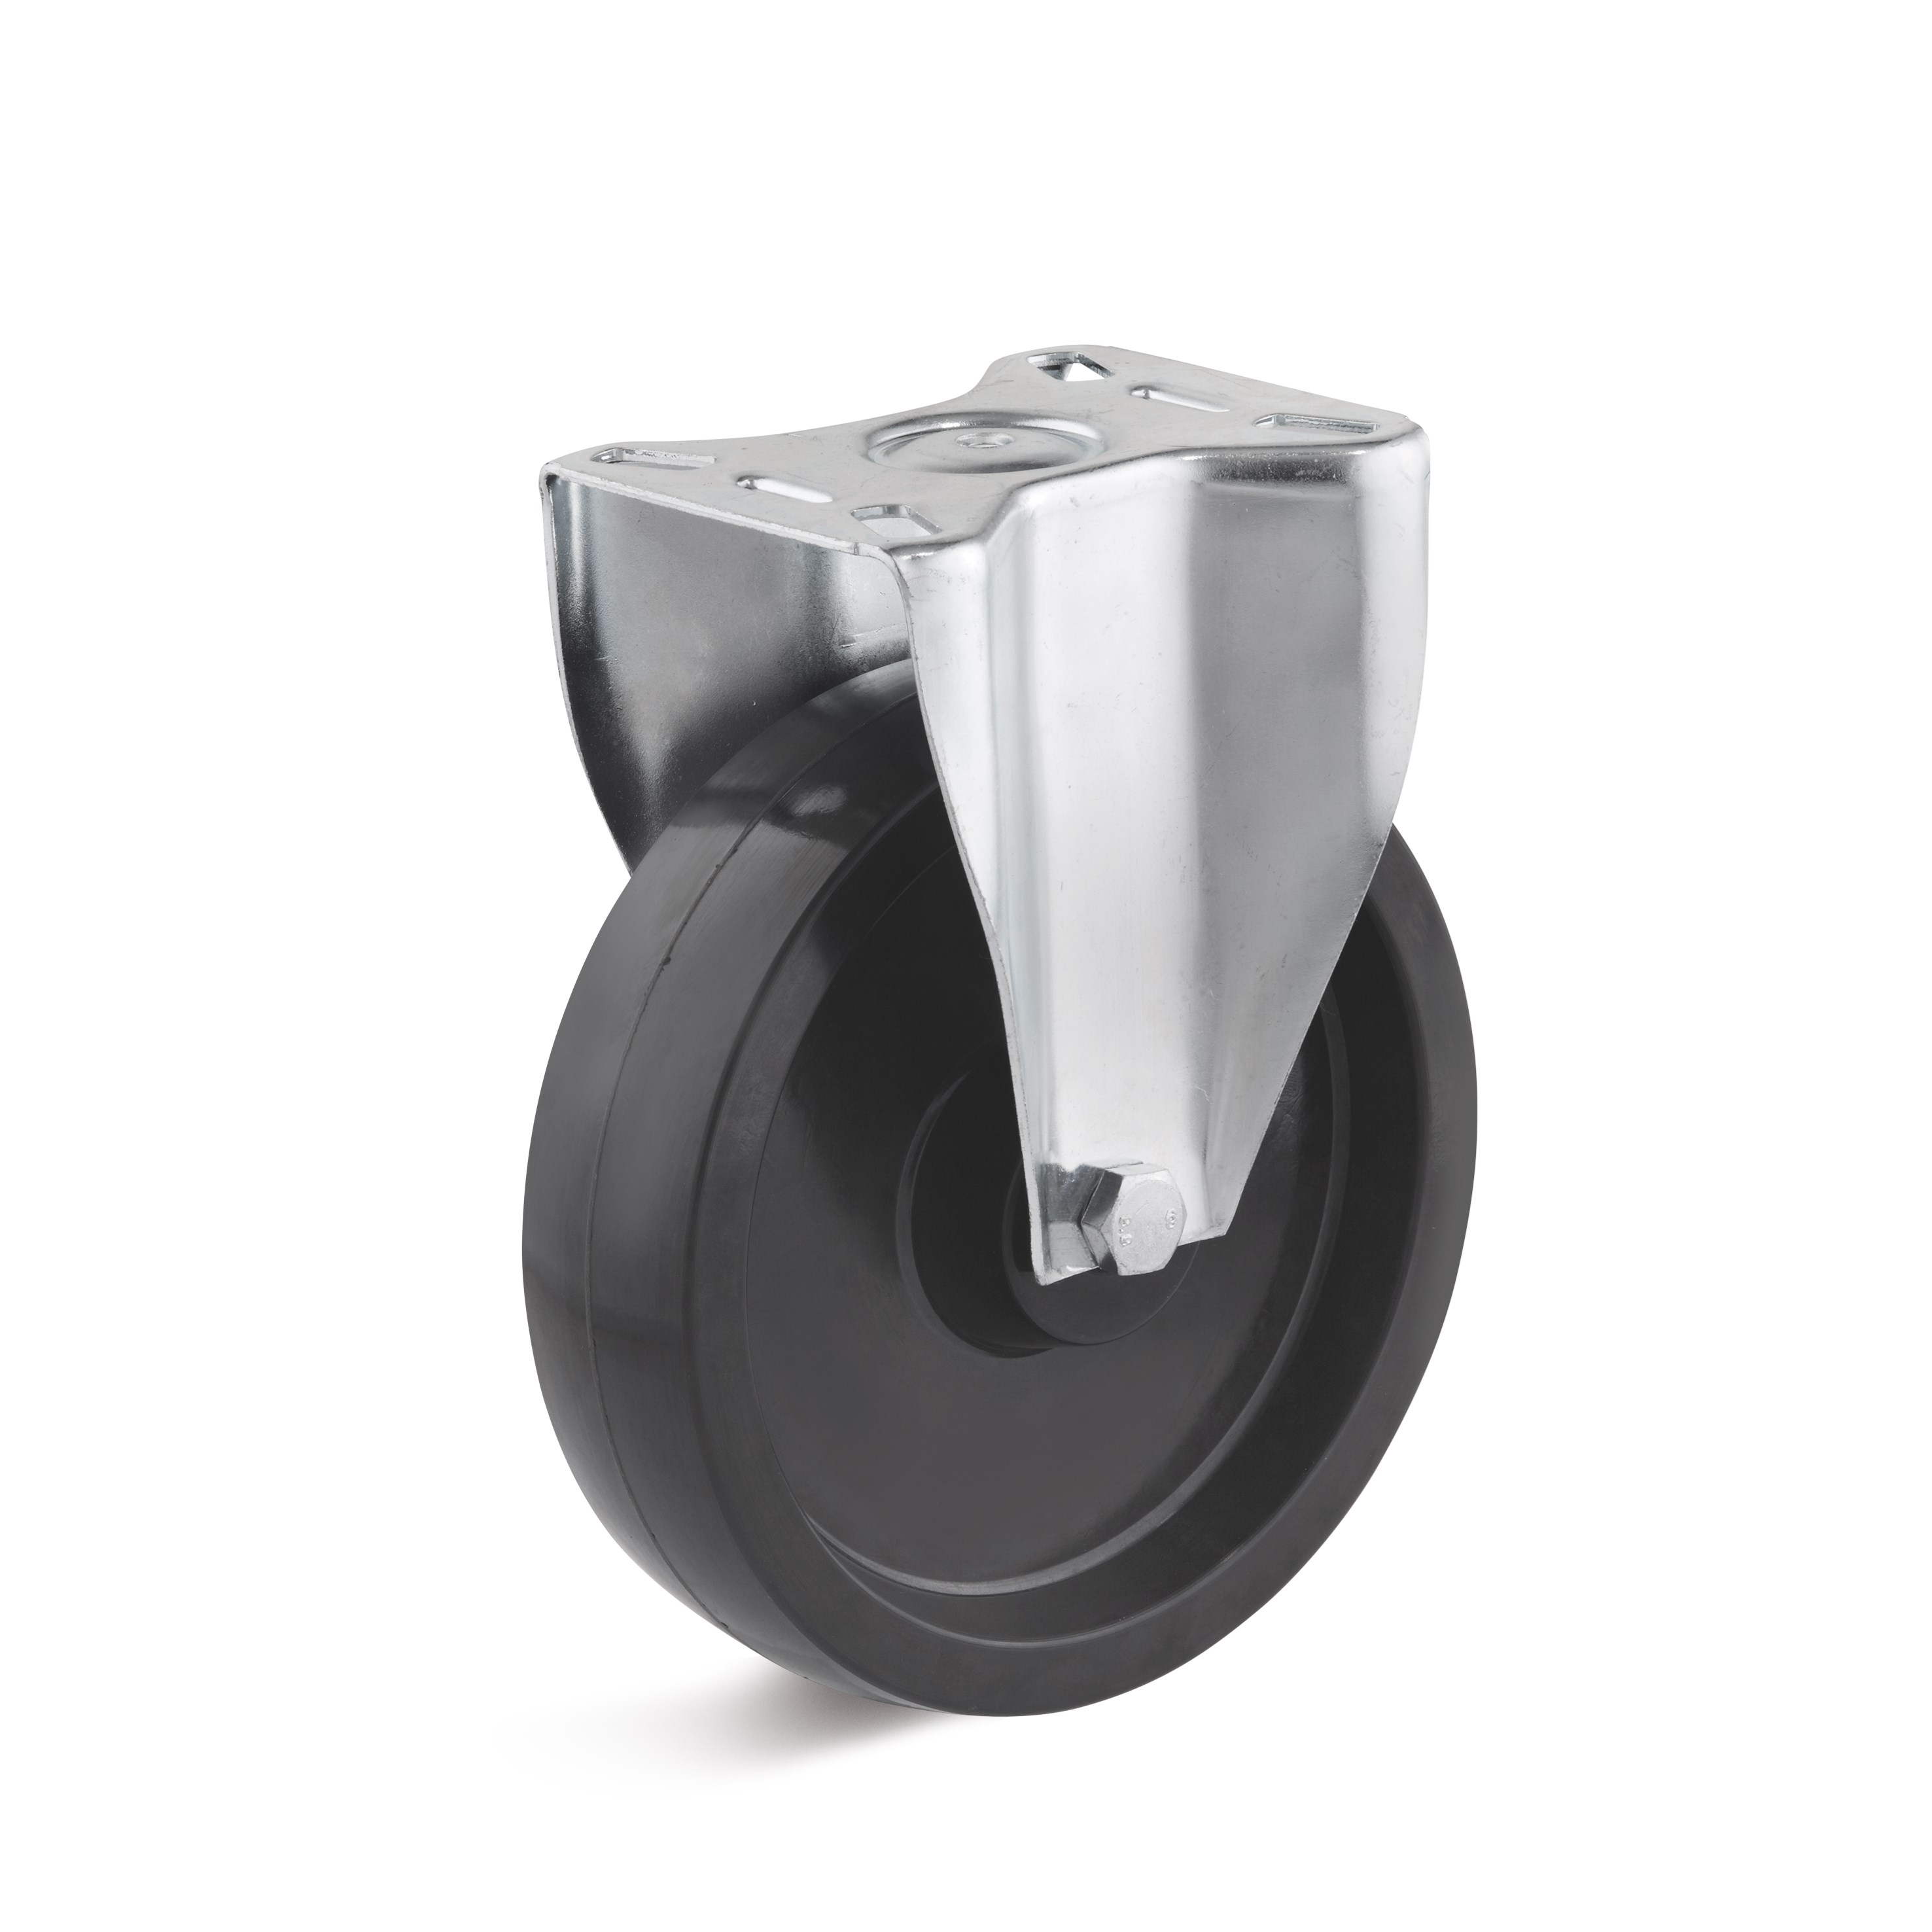 Fixed caster with heat-resistant plastic wheel